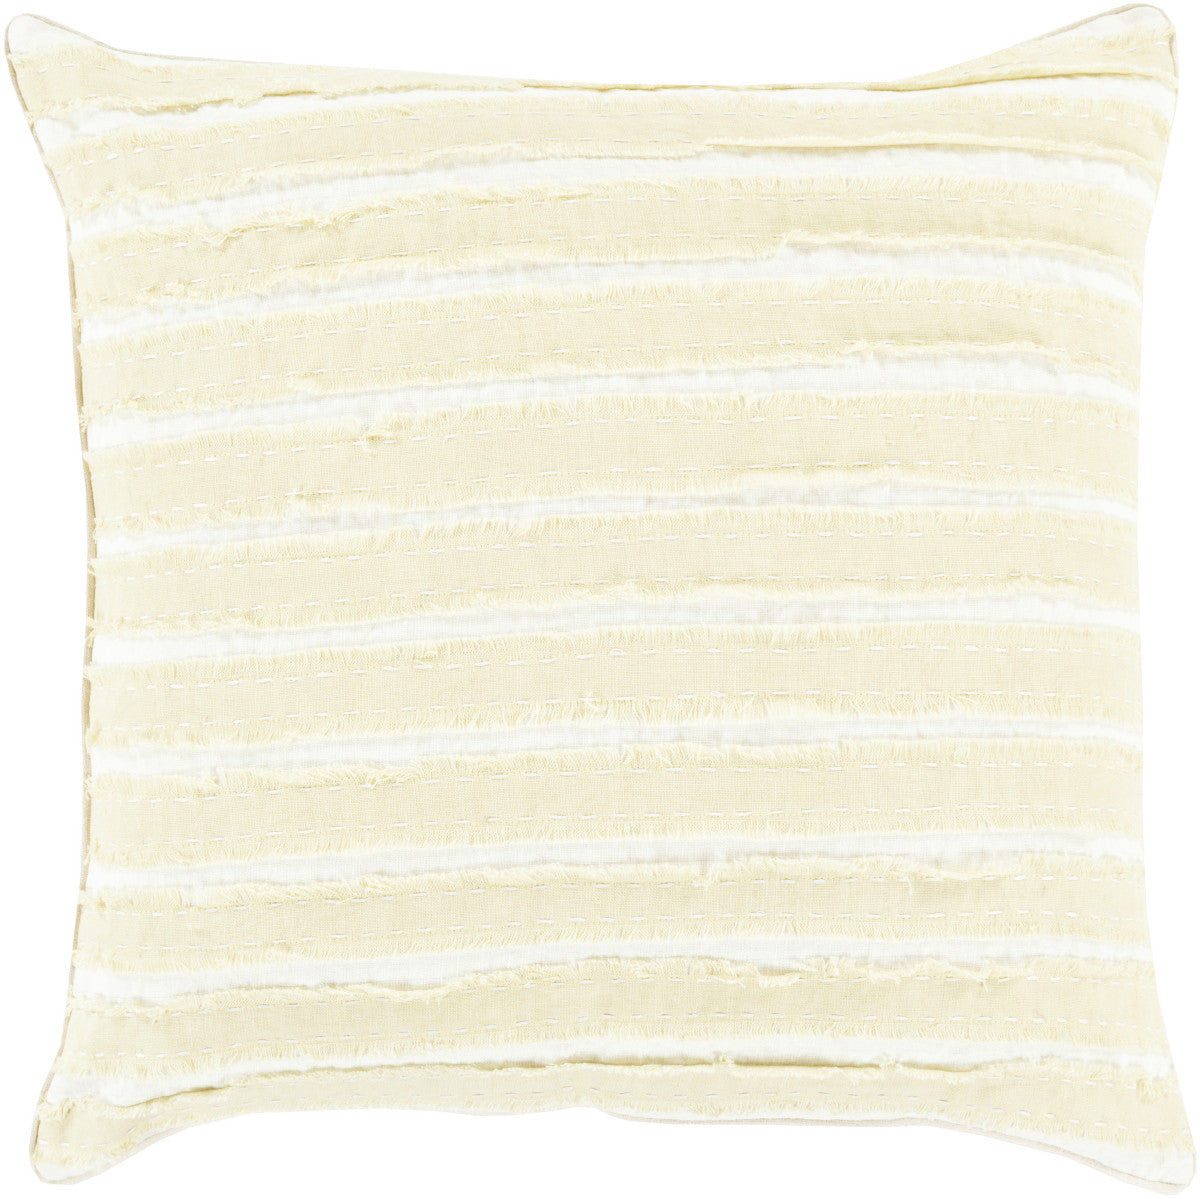 Surya Willow Charm and Comfort WO-001 Pillow